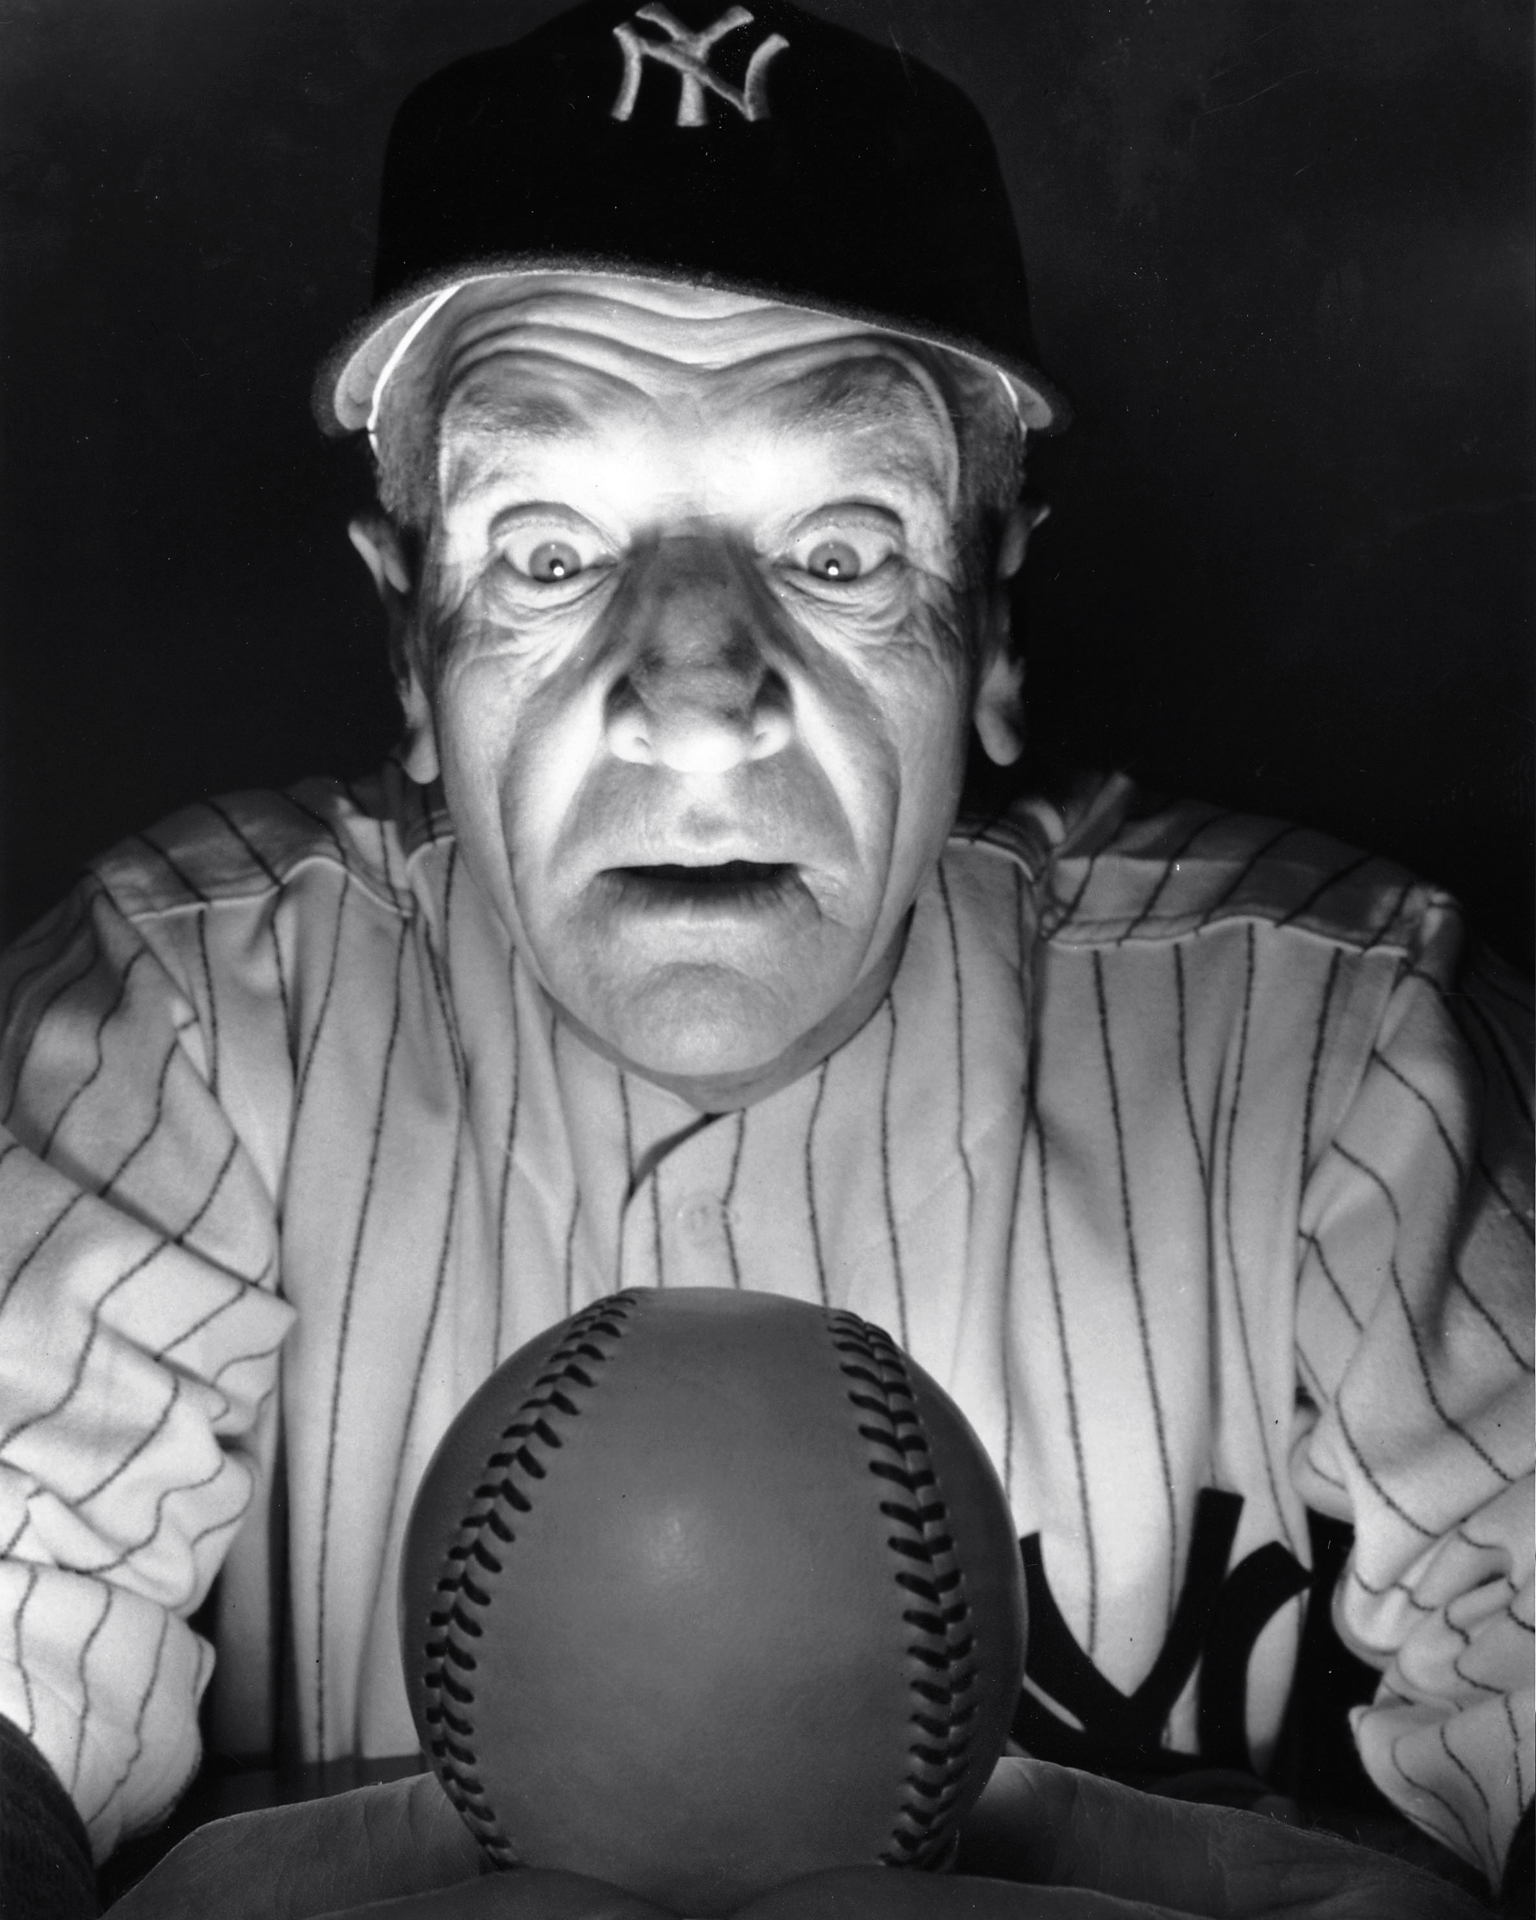 Casey Stengel looking at a future so bright he requires sunglasses.